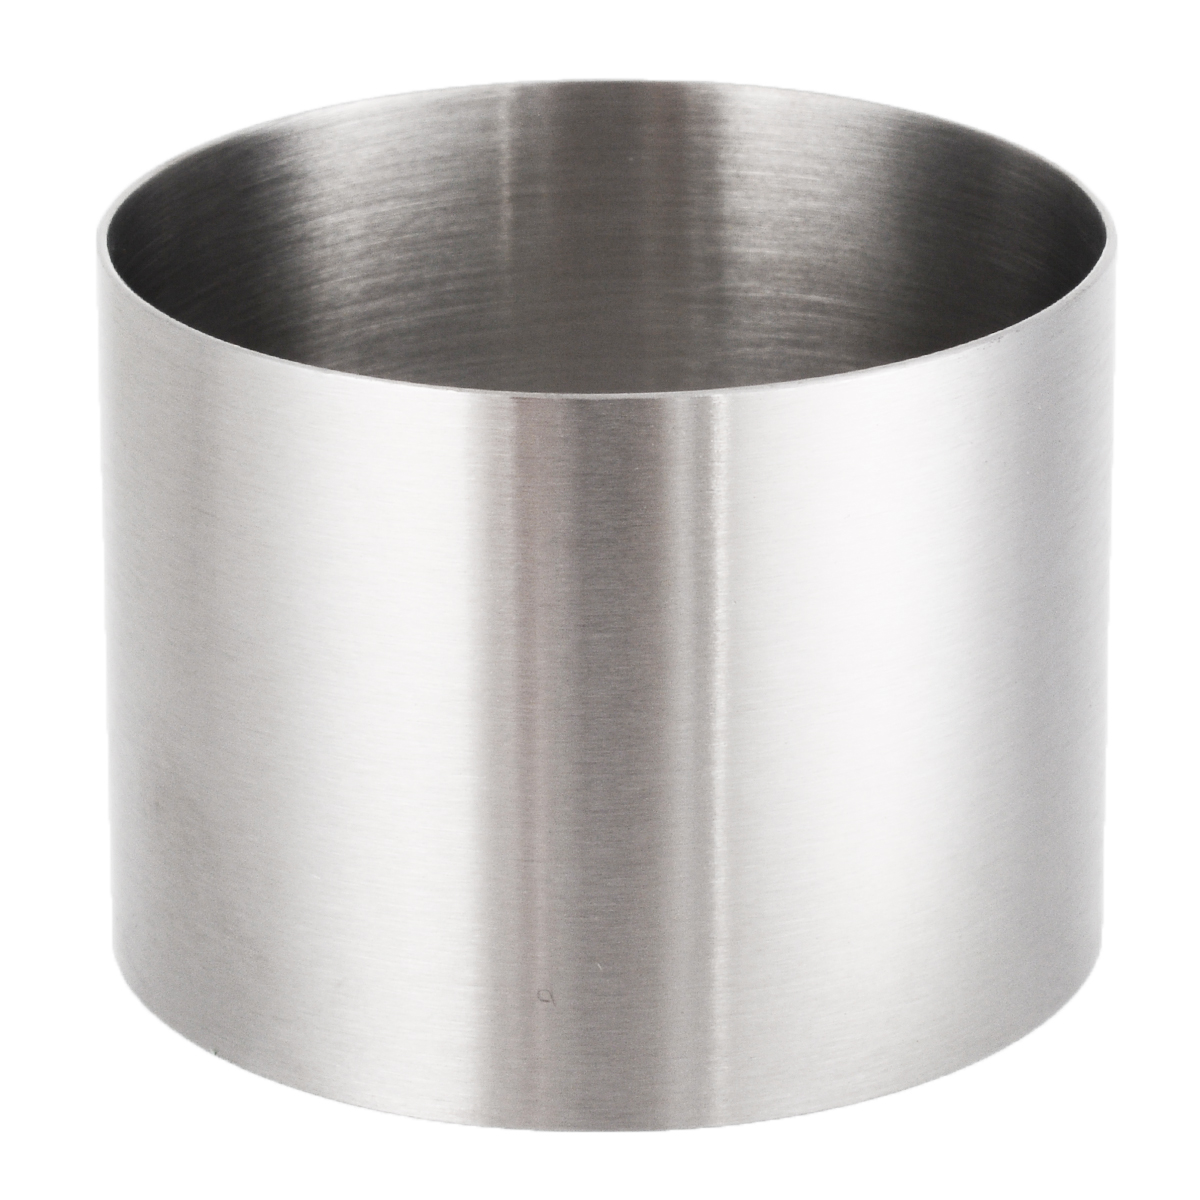 1PC Stainless Steel Cake Mold Fondant Mould Round Cake Mold Chocolate Mousse Cake Pastry Baking Tool